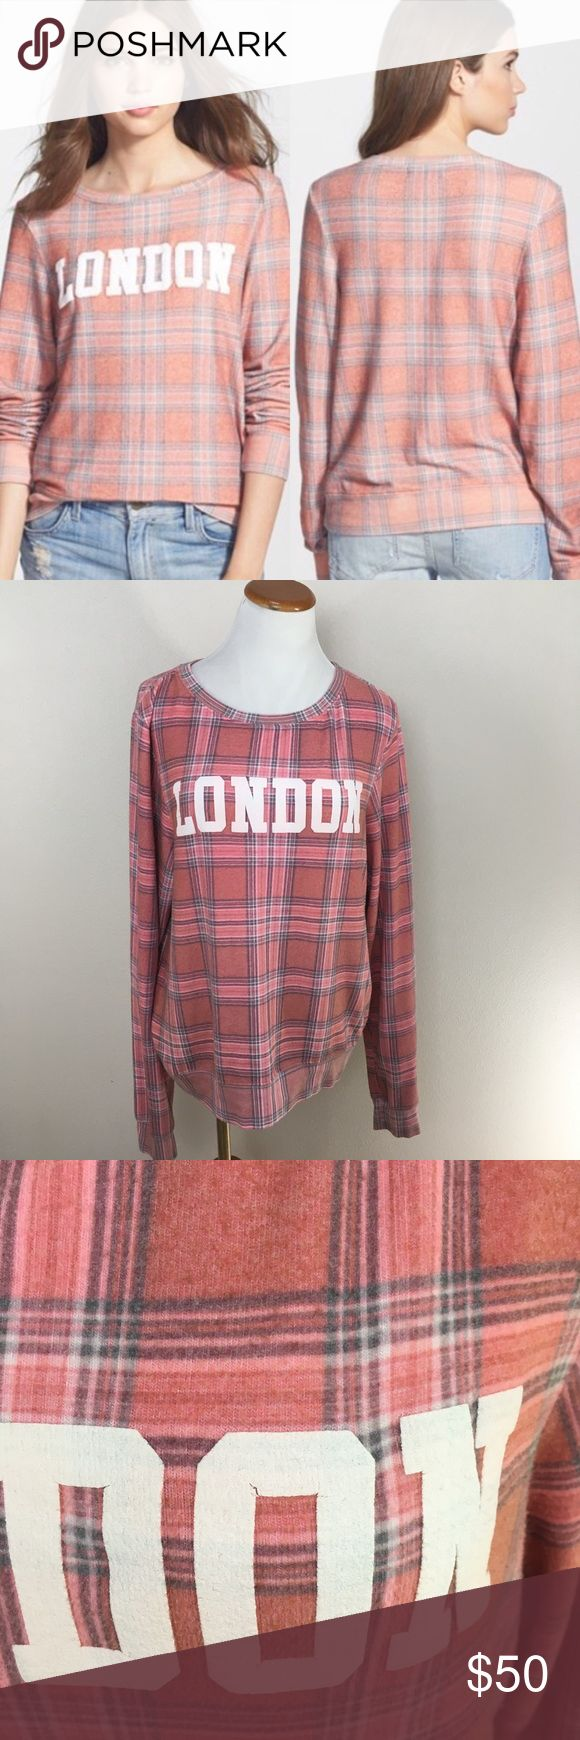 Wildfox Couture LONDON Pink Plaid Sweatshirt Large Wildfox Couture LONDON Pink Plaid Long Sleeve Sweatshirt Top Large. Good condition! It is a brushed fleece fabric so the fuzzy is manufactured that way. Normal wear and tear. Some cracking on letters due to normal wear and tear. Clean and comes from smoke free home. Questions welcomed! Wildfox Couture Tops Sweatshirts & Hoodies